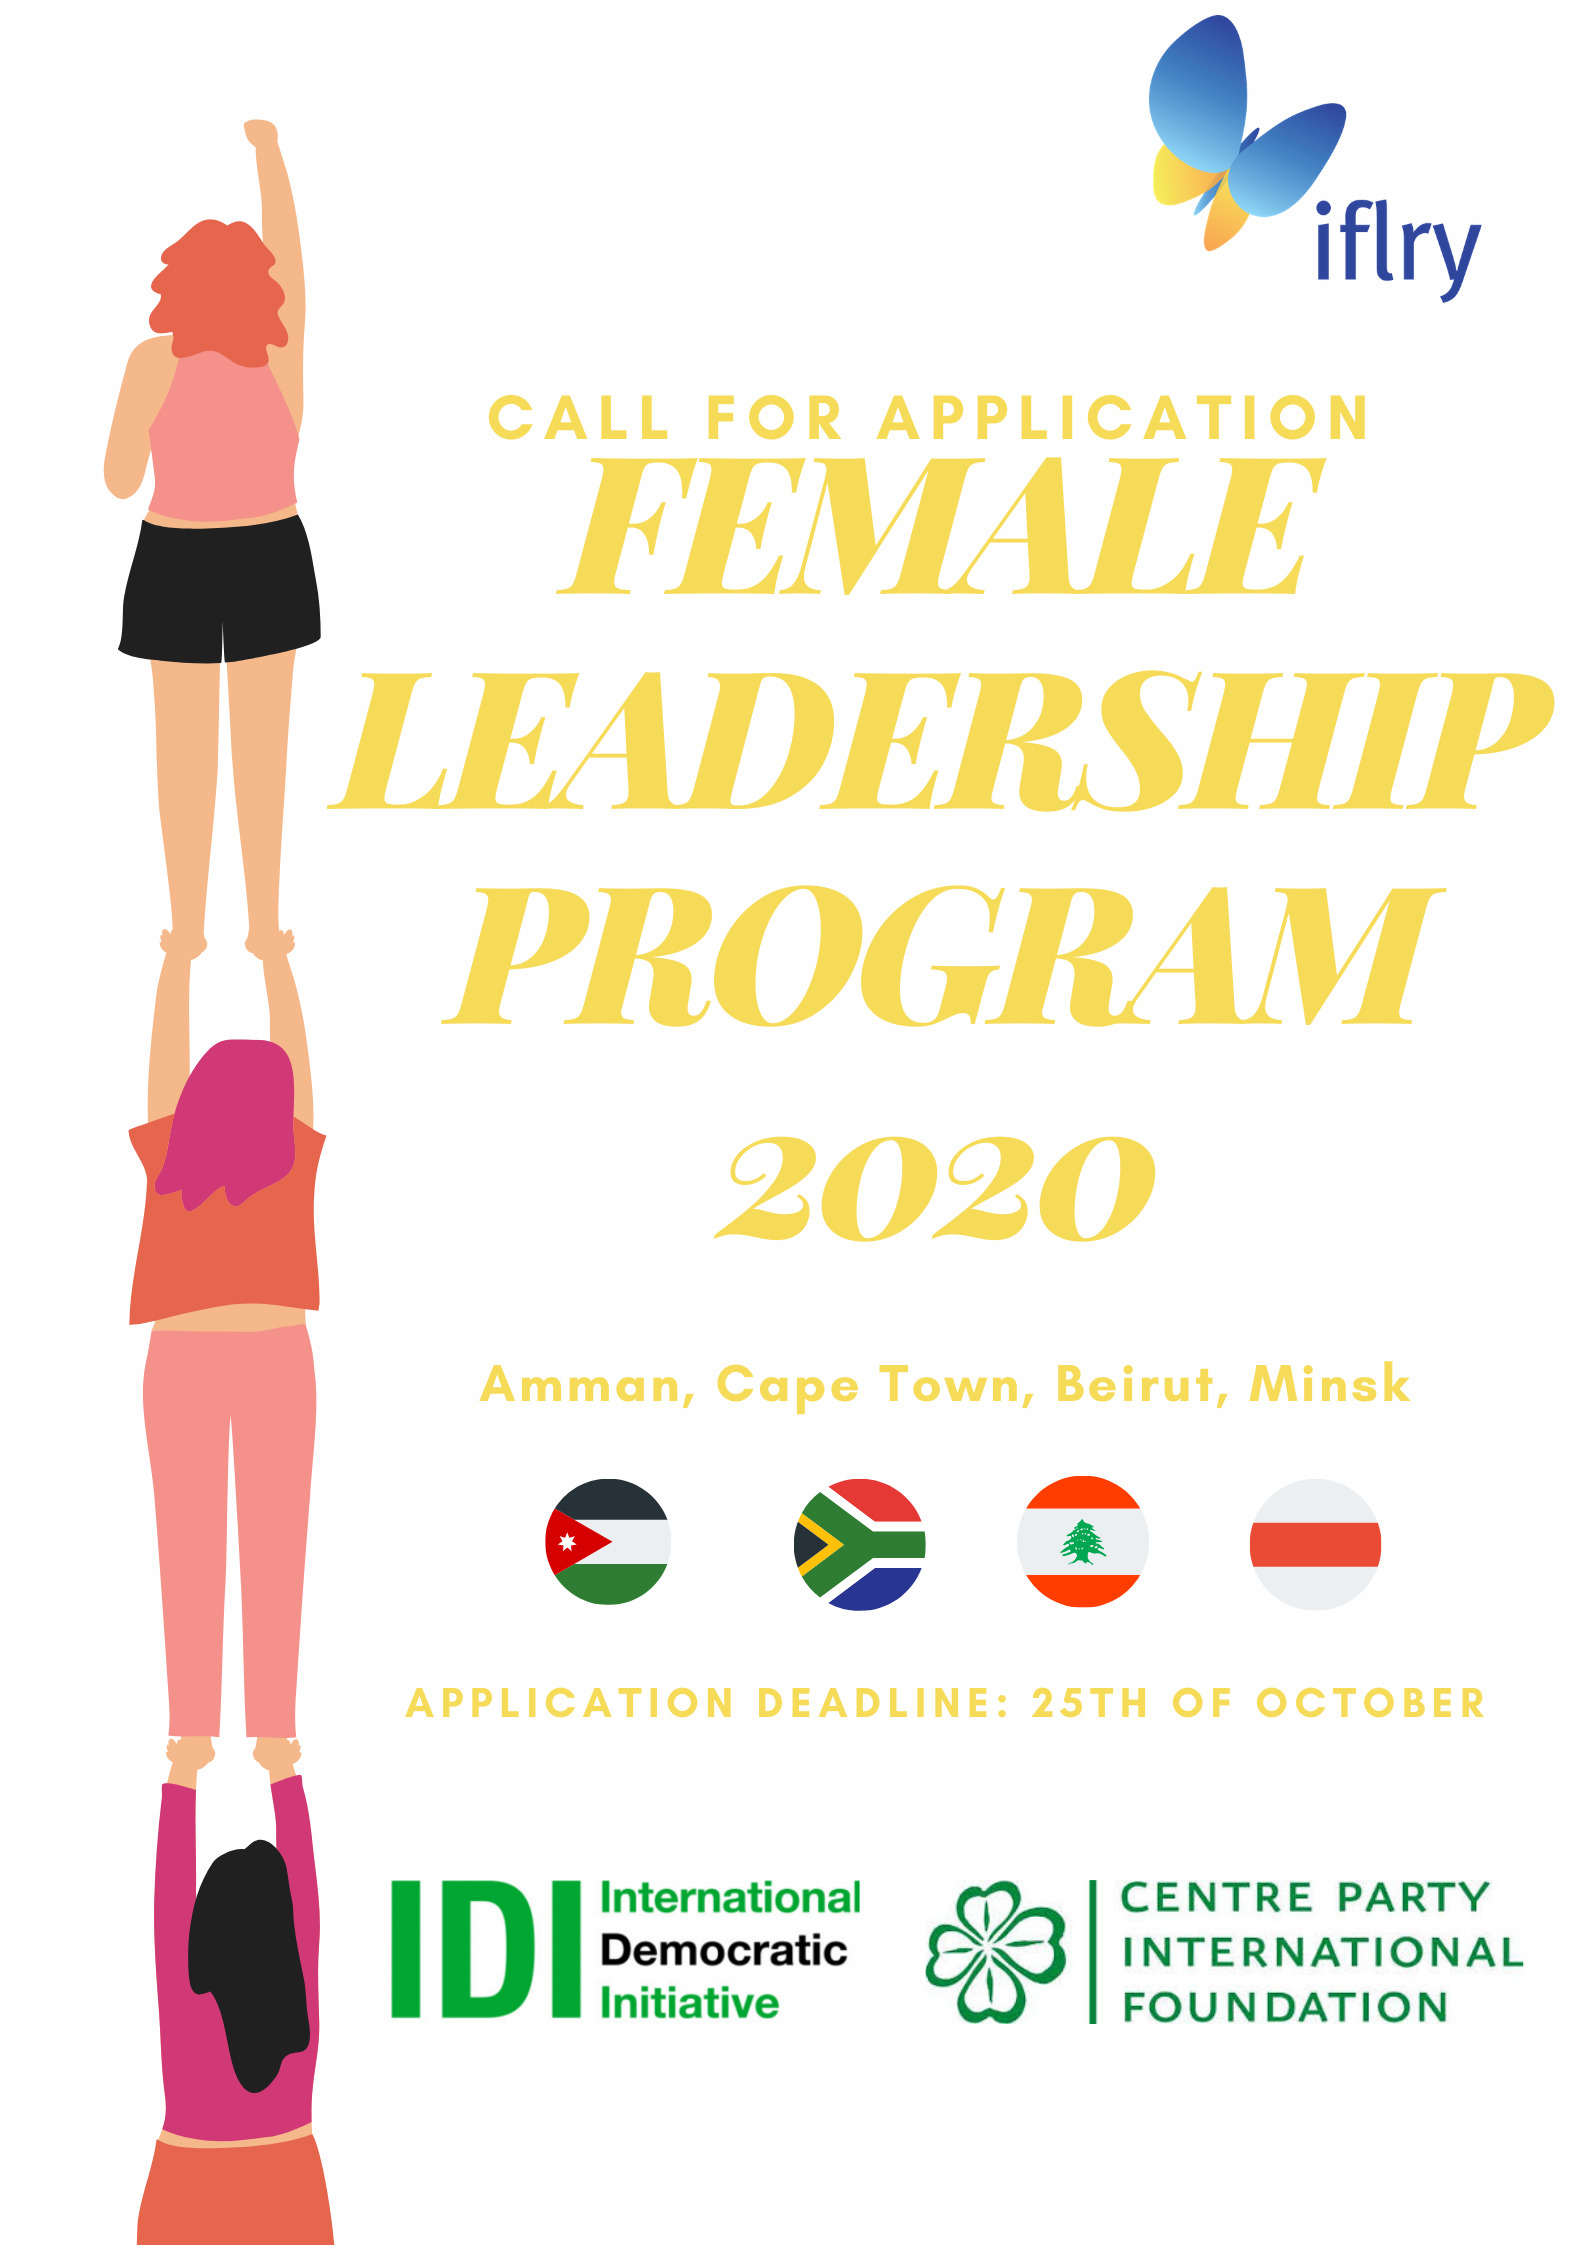 FEMALE LEADERSHIP PROGRAMME 2020